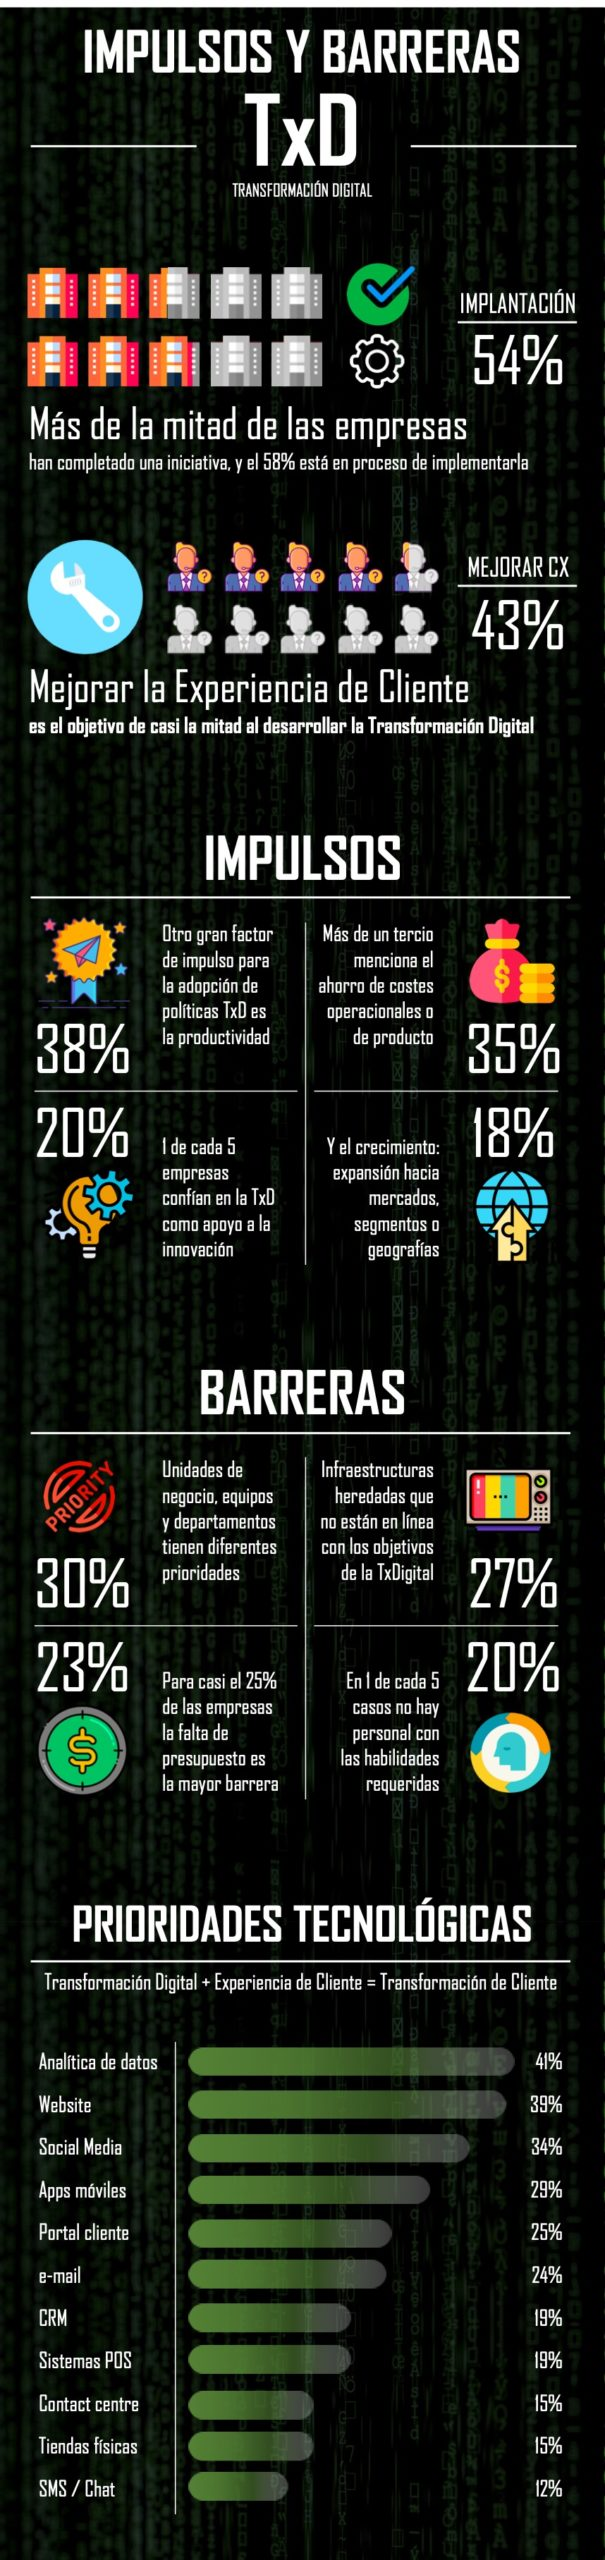 Impulsos y Barreras de la Transformación Digital